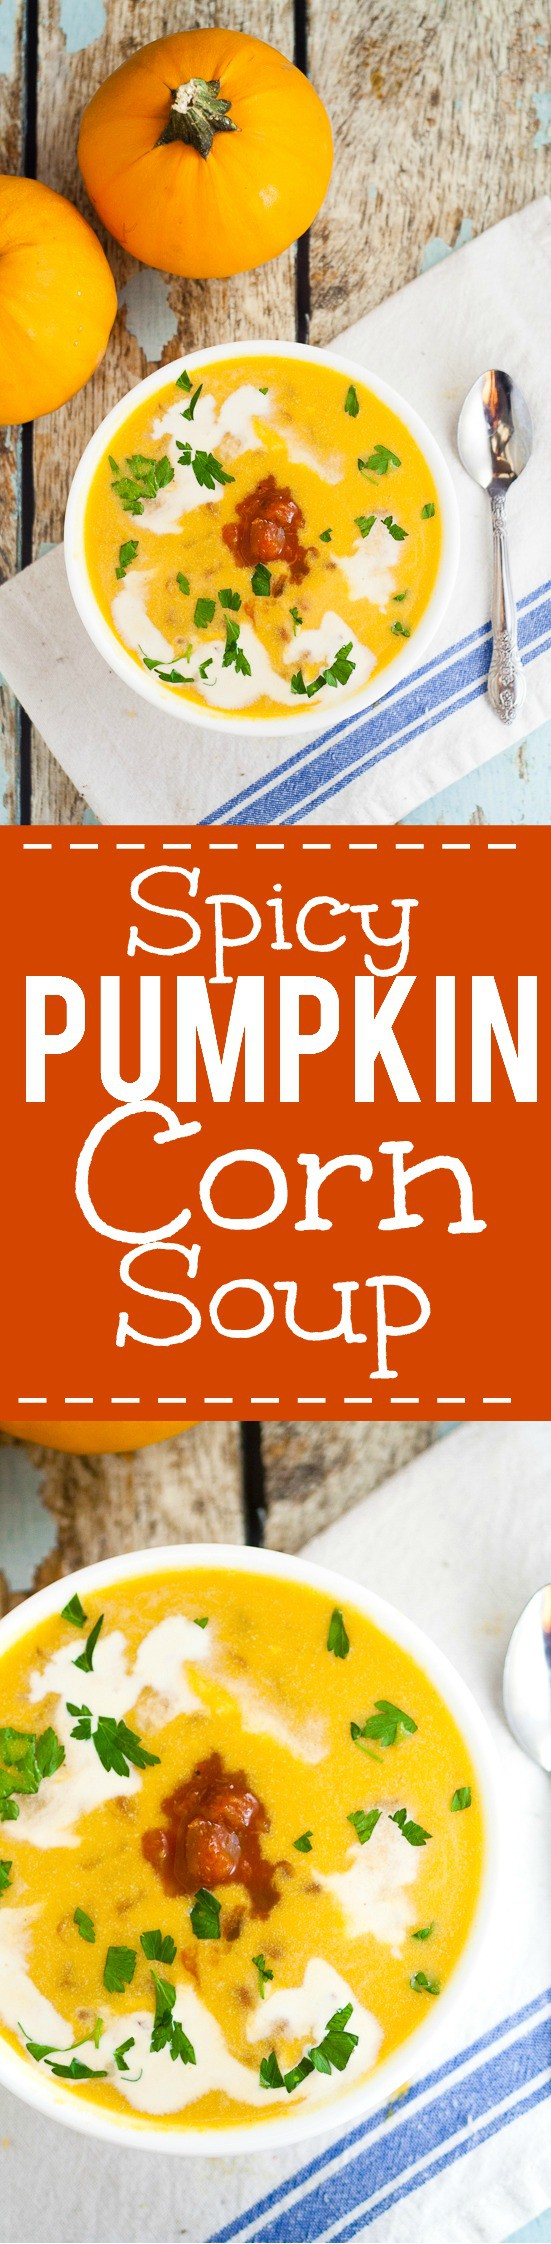 Savory Spicy Southwest Pumpkin Soup Recipe -Just in time for pumpkin season, this Spicy Southwest Pumpkin Soup recipe is a delicious savory alternative to traditional pumpkin spice that is a quick, easy and healthy pumpkin soup recipe. Pumpkin! This looks fabulous! And soooo easy!